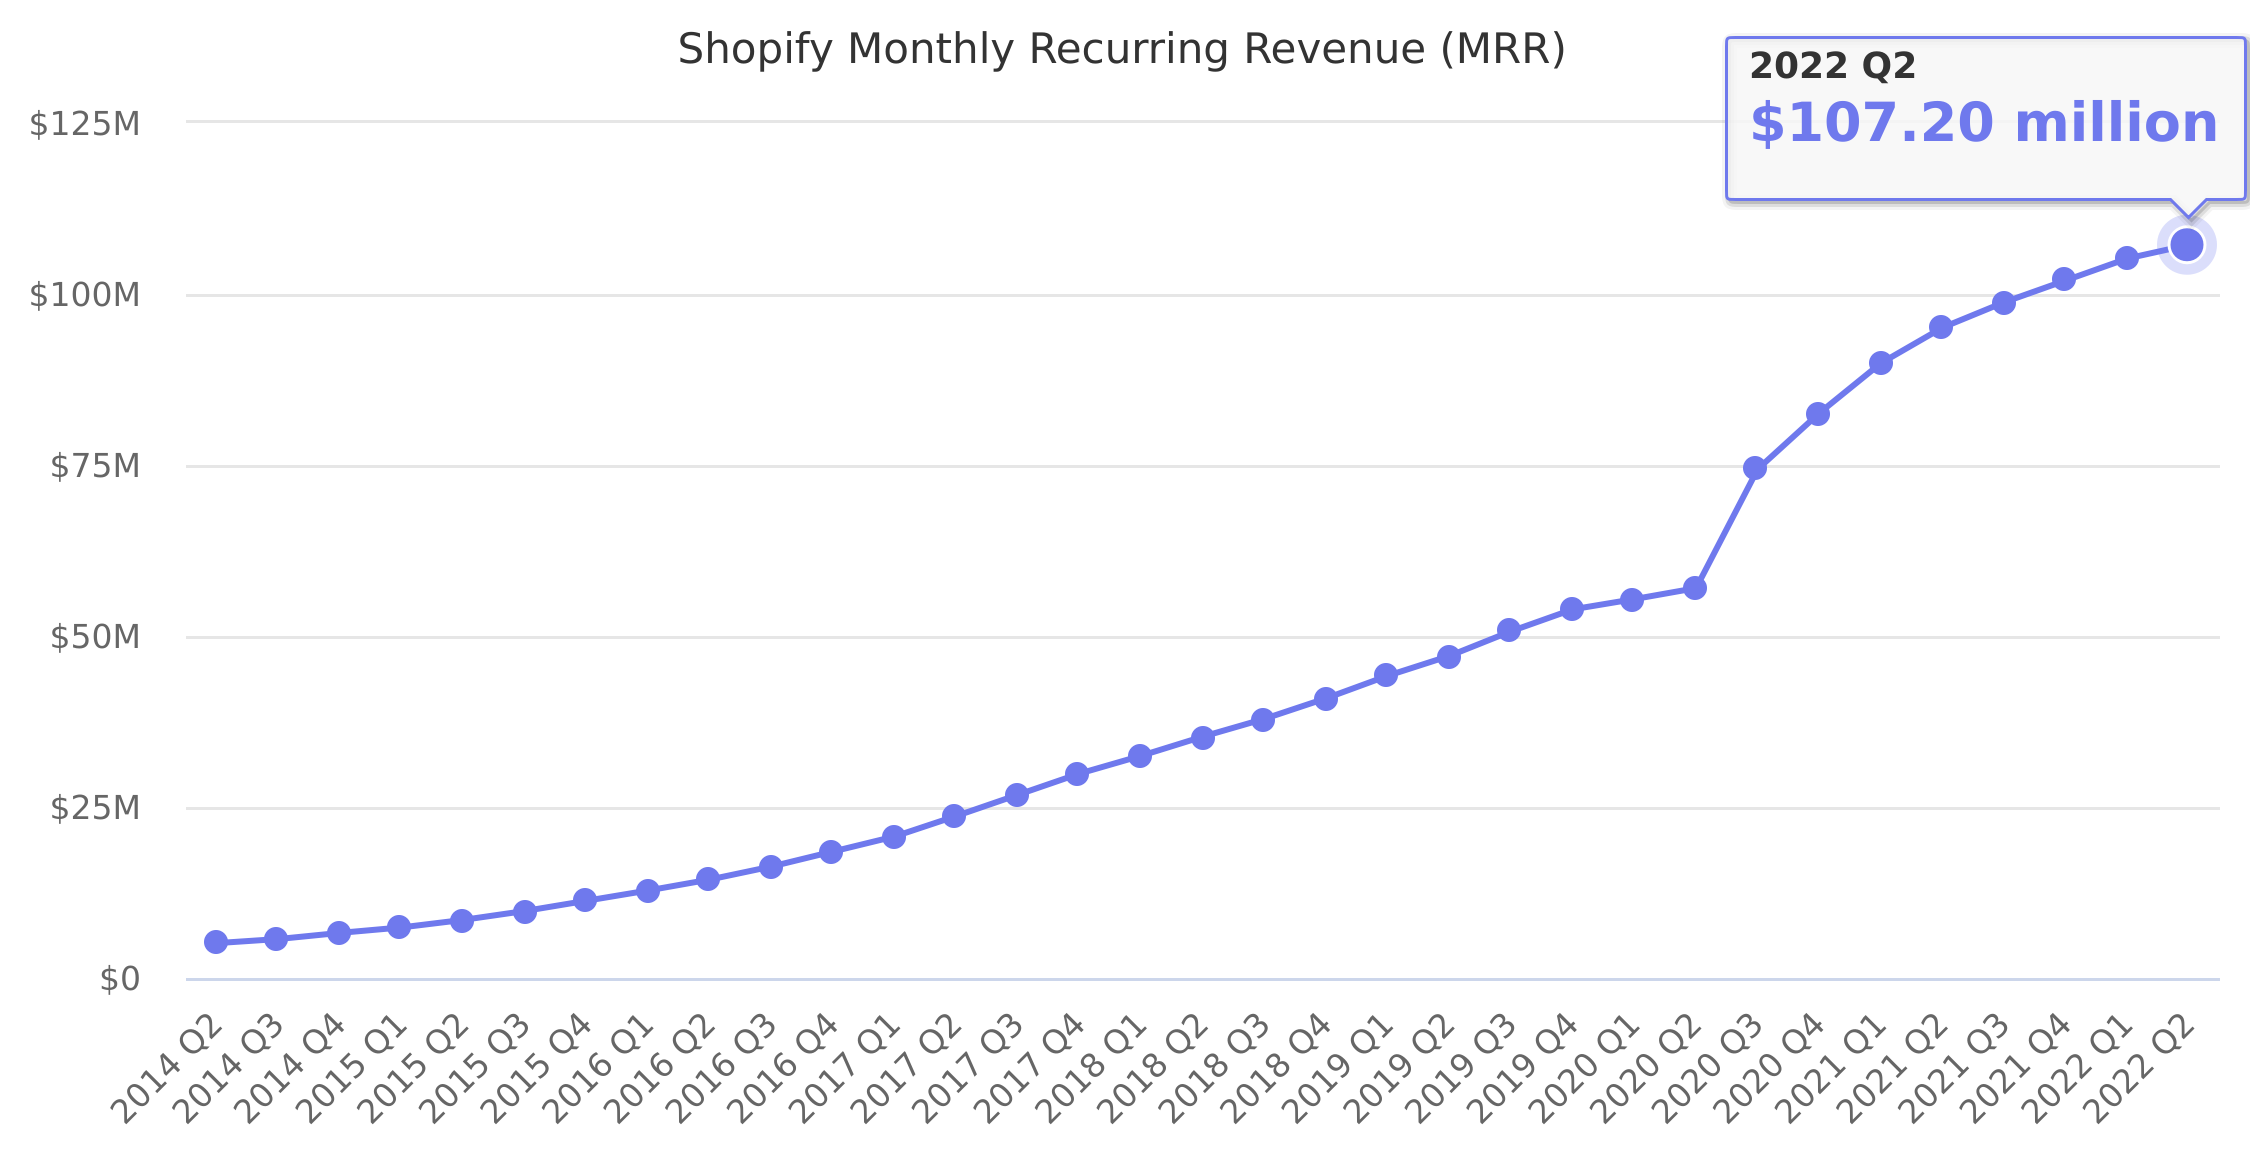 Shopify Monthly Recurring Revenue (MRR) 2014-2018